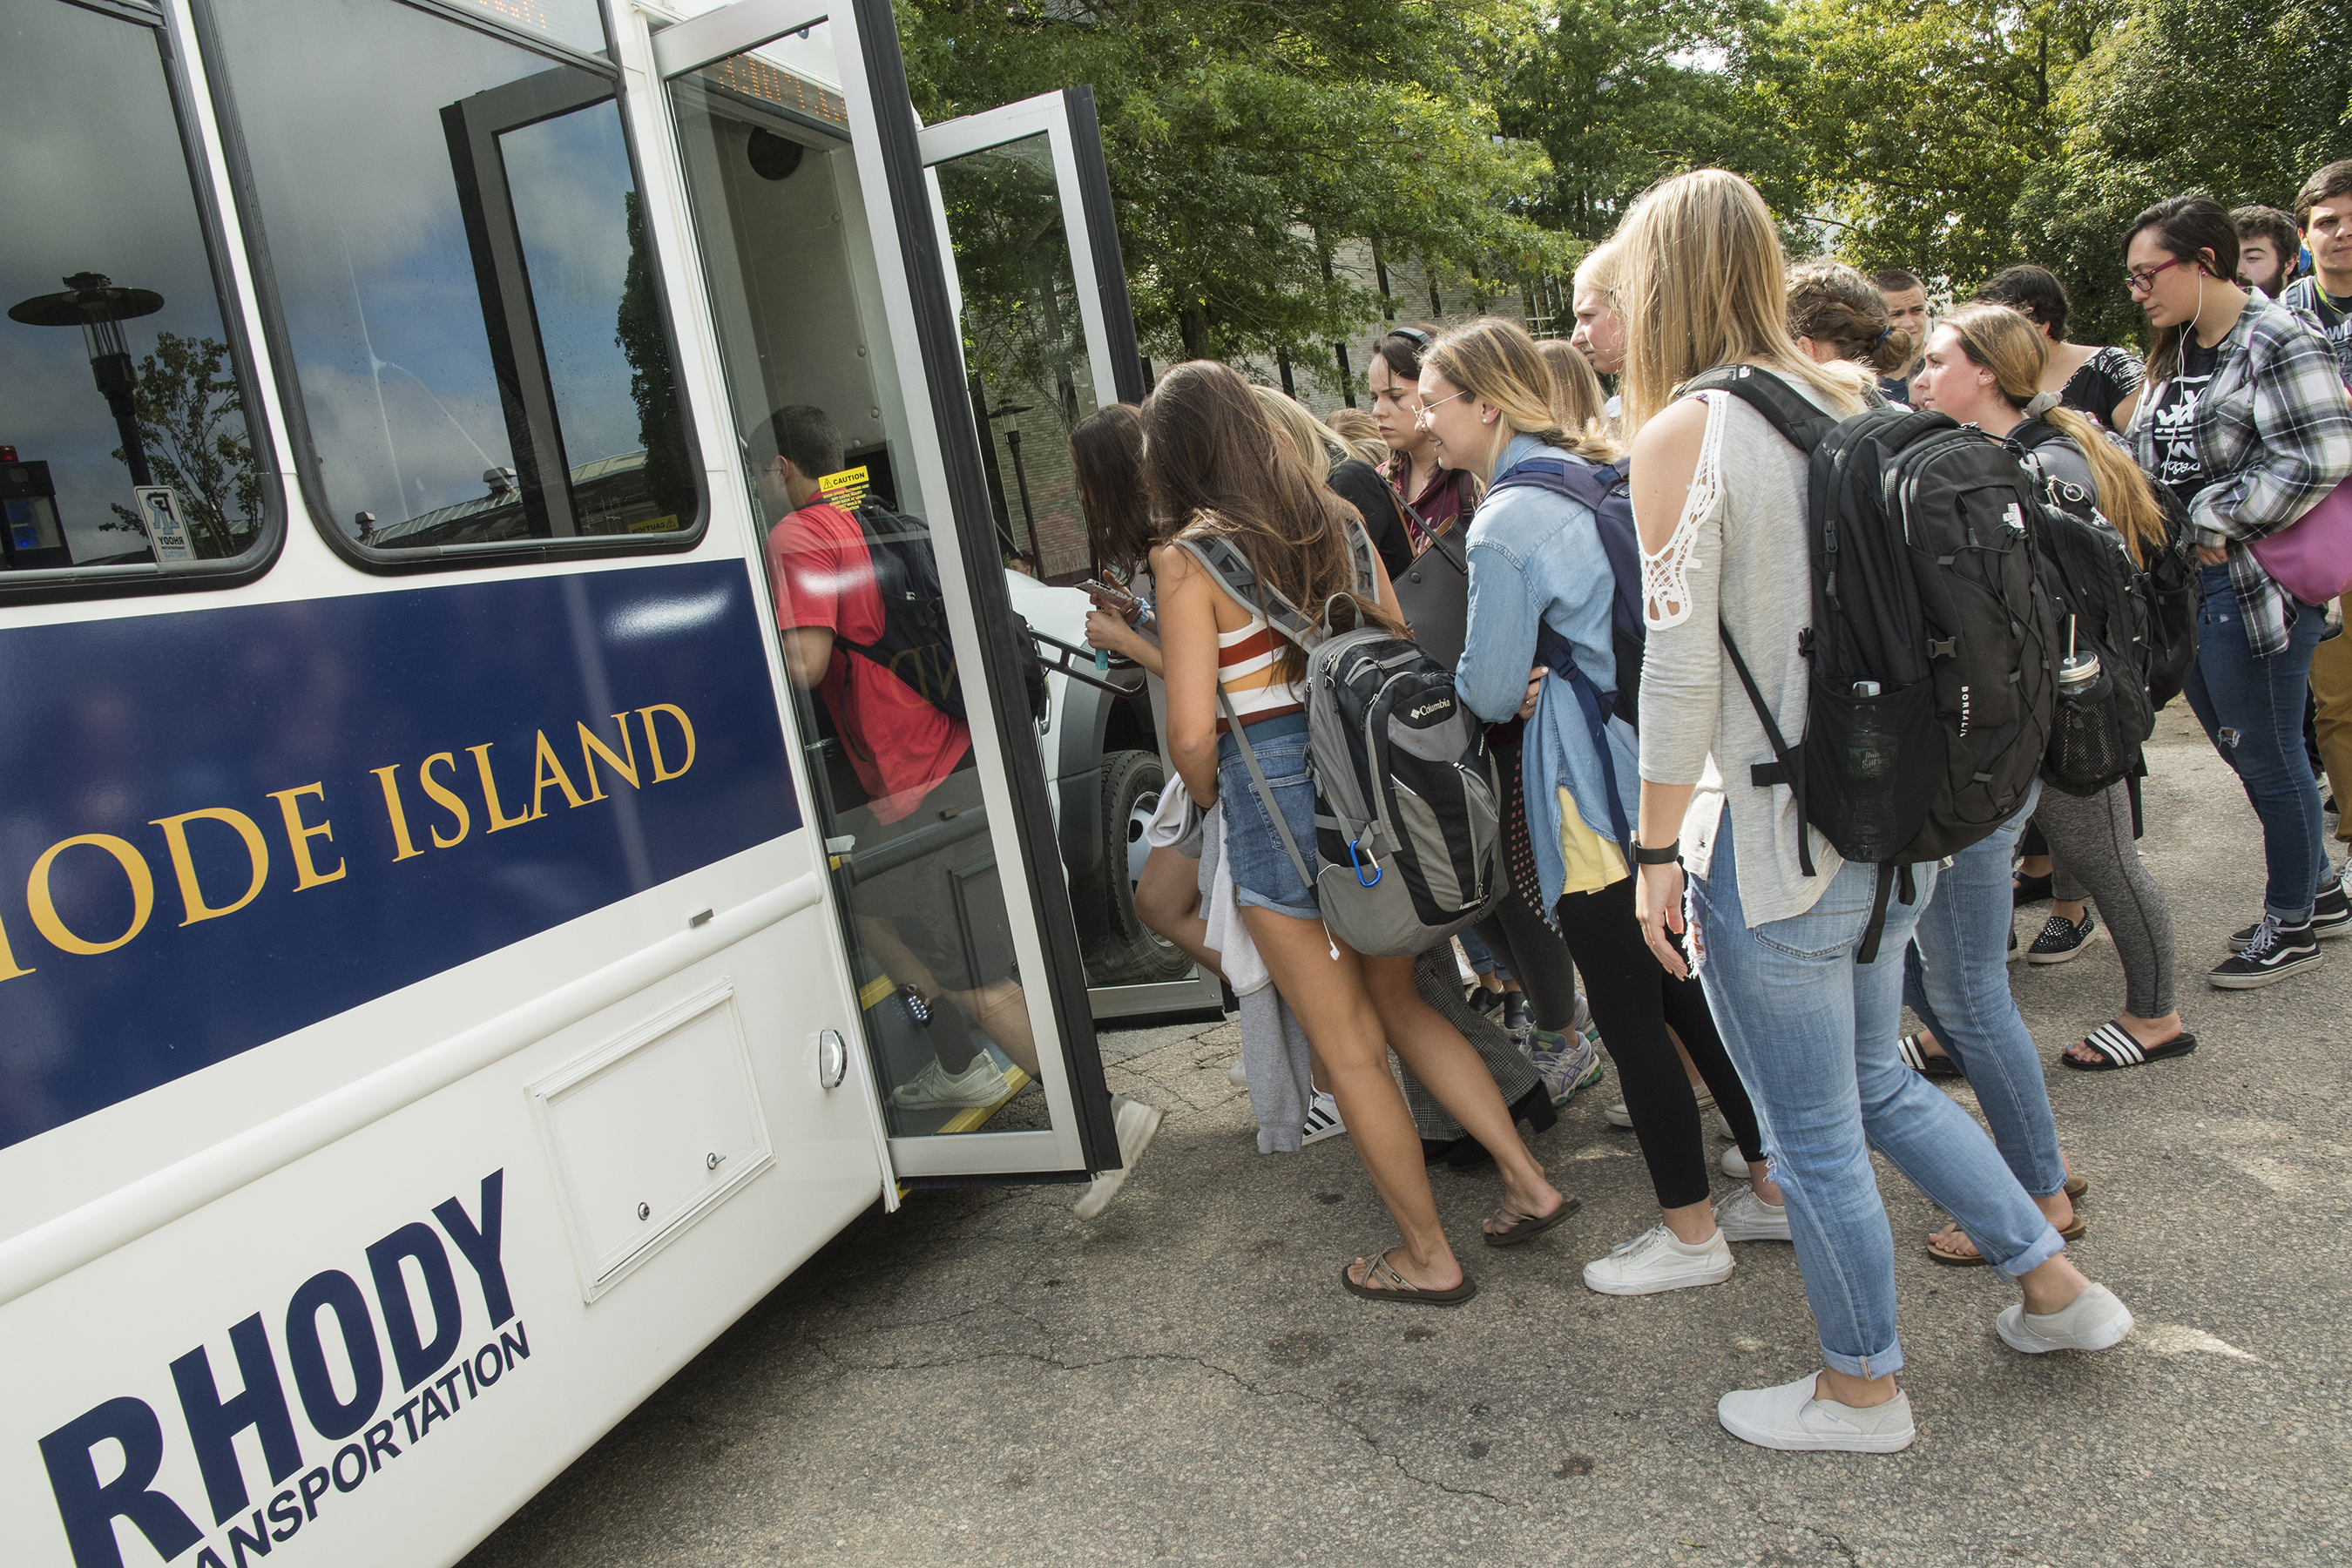 Uri Rolls Out Its Own New, Expanded Shuttle Service – Uri Today regarding Univeristy Of Rhode Island School Holidays